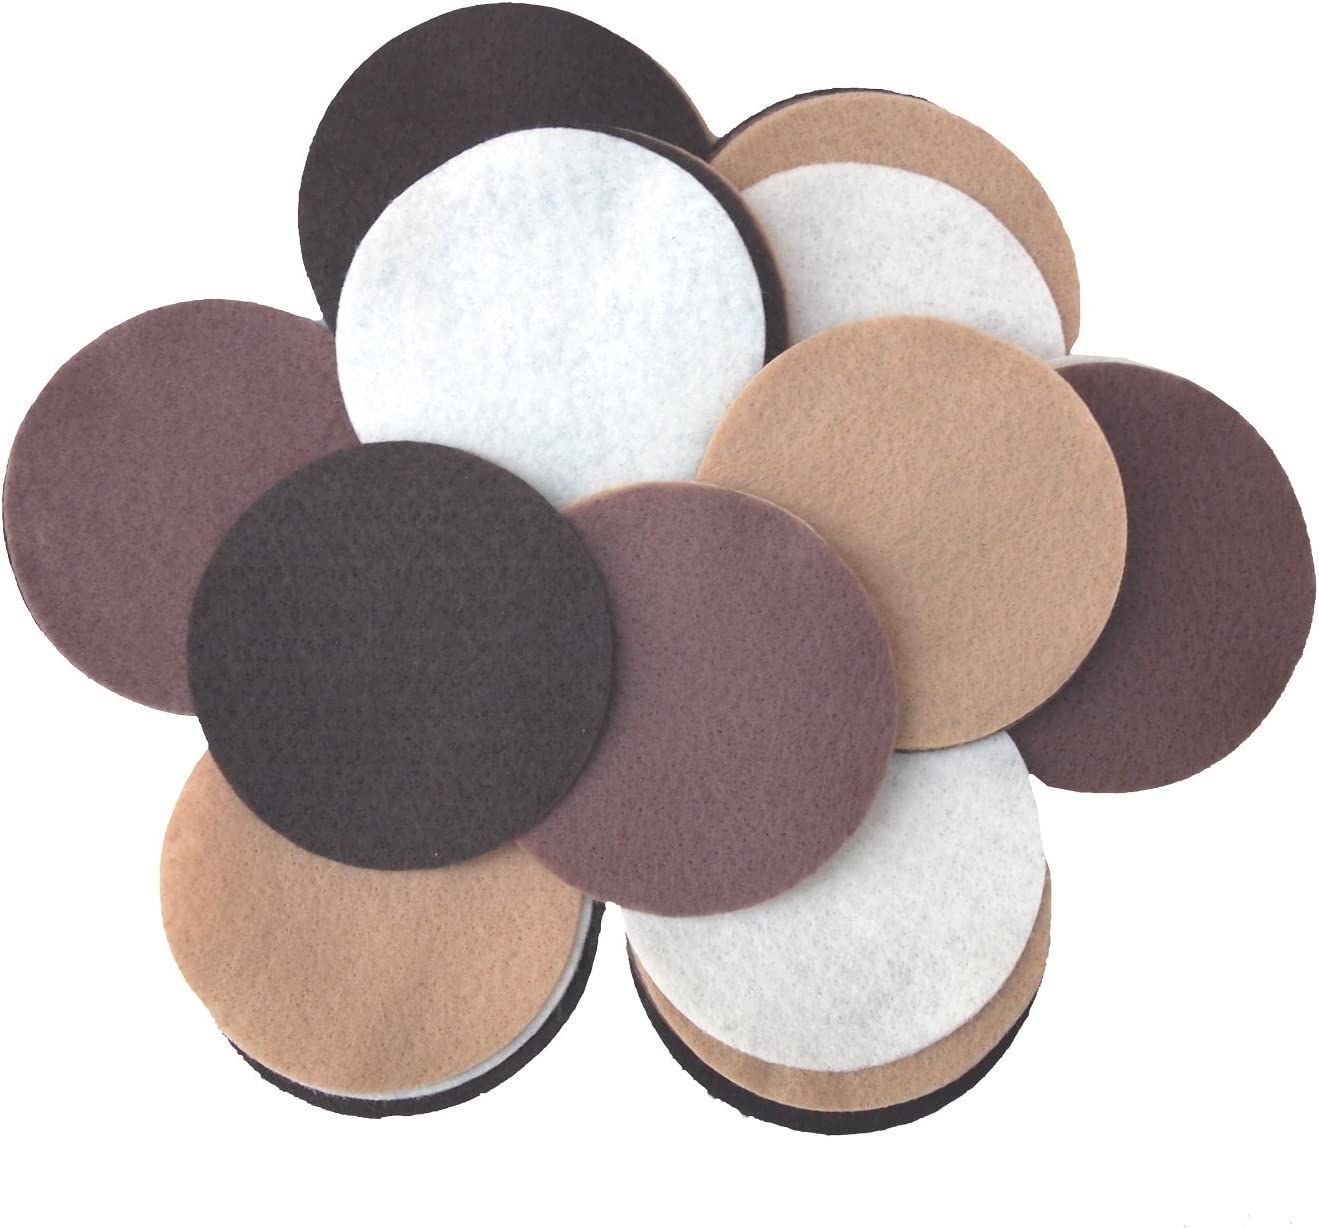 Cocoa Playfully Ever After Brown Camel /& Cream Craft Felt Circles Mixed Size Pack - 56pc